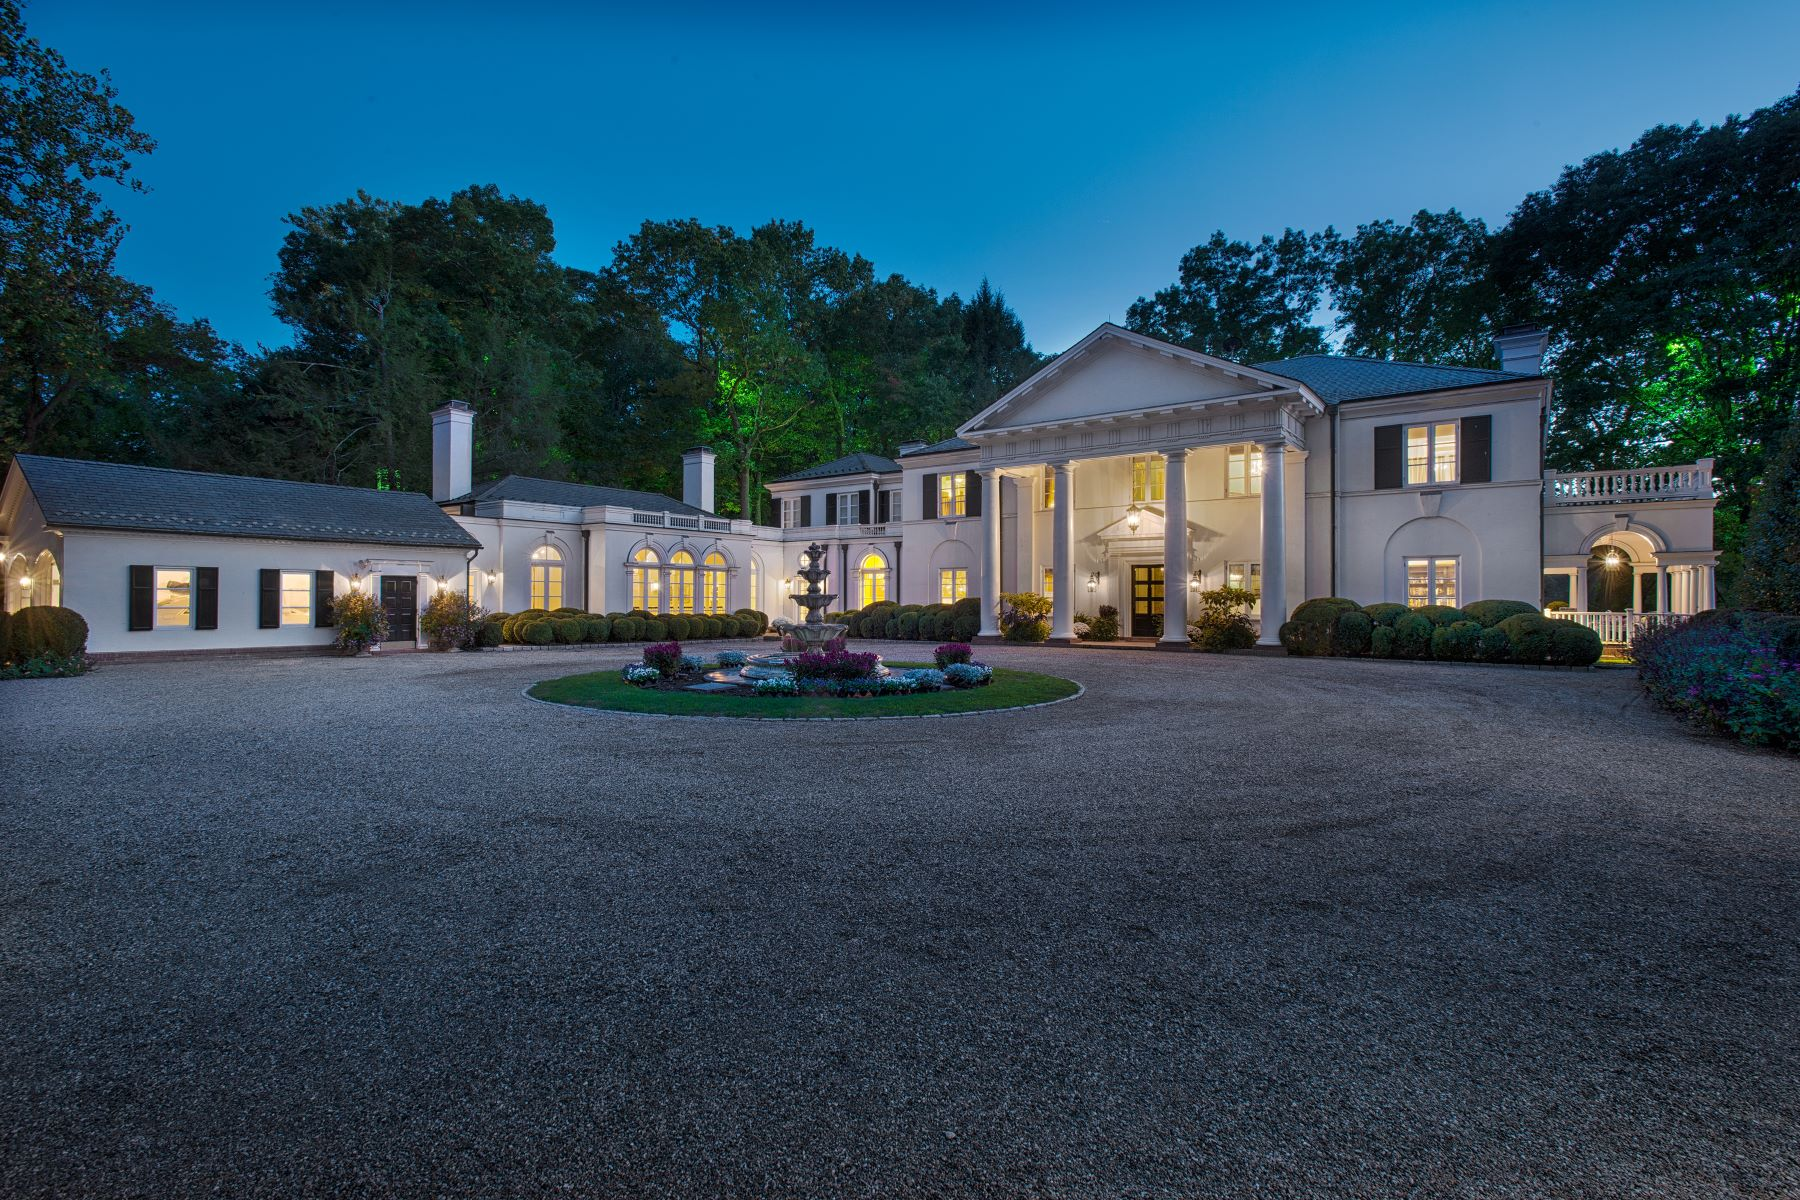 single family homes for Sale at 99 Huckleberry Hill Road New Canaan, Connecticut 06840 United States